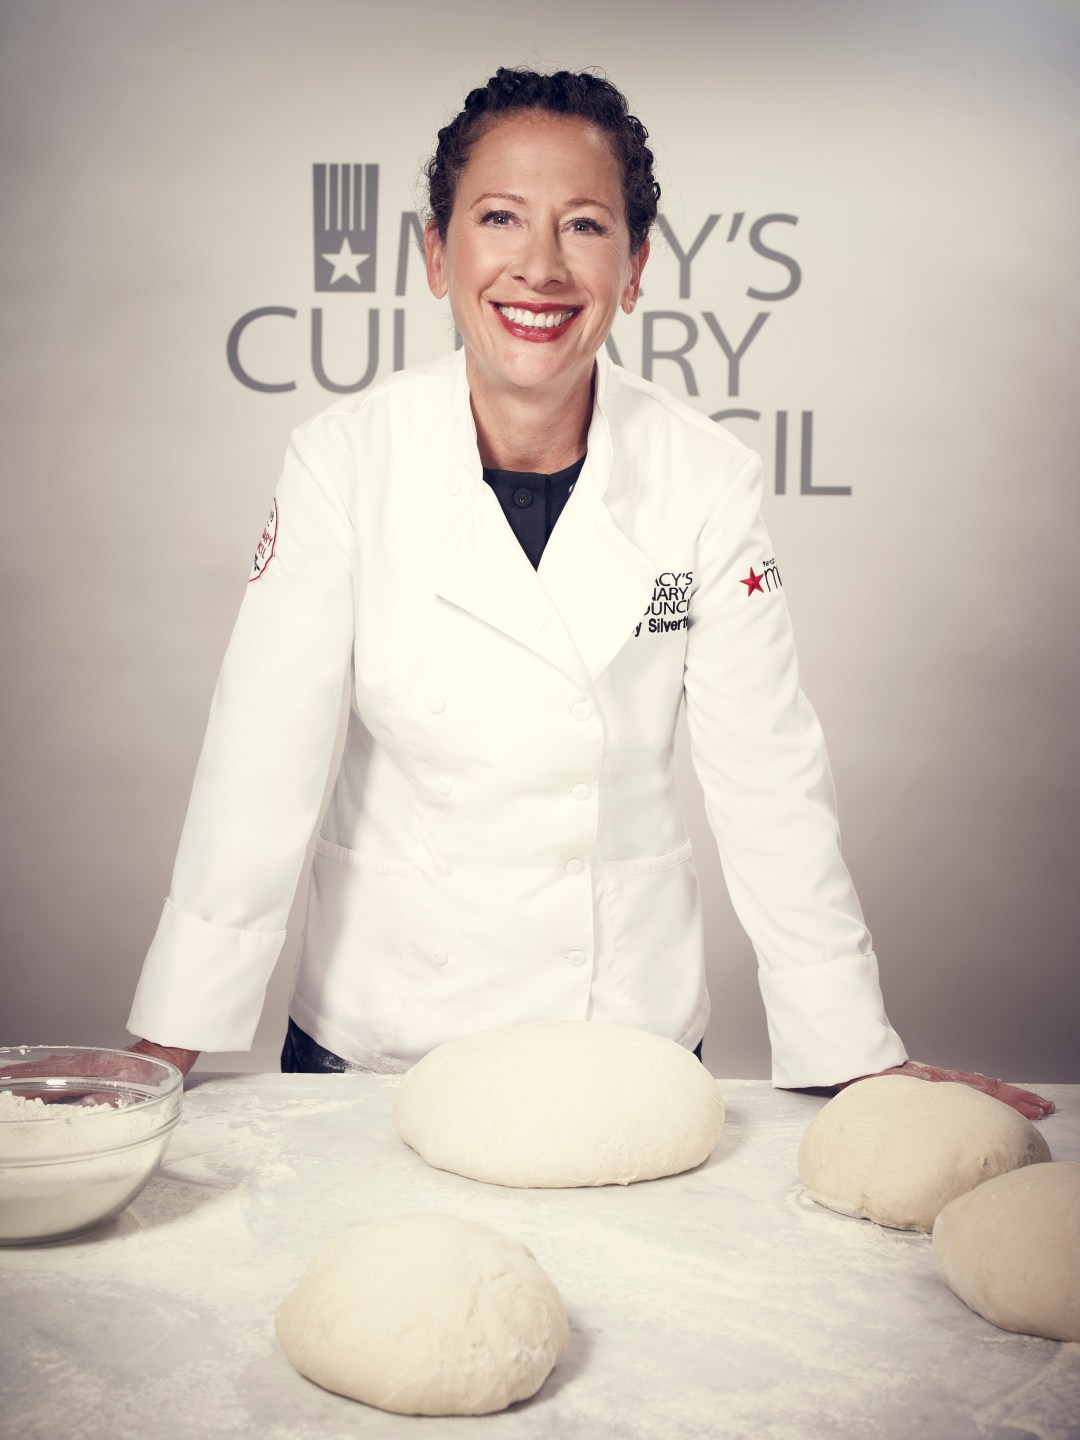 Culinary Council Chef Nancy Silverton #MacysChef